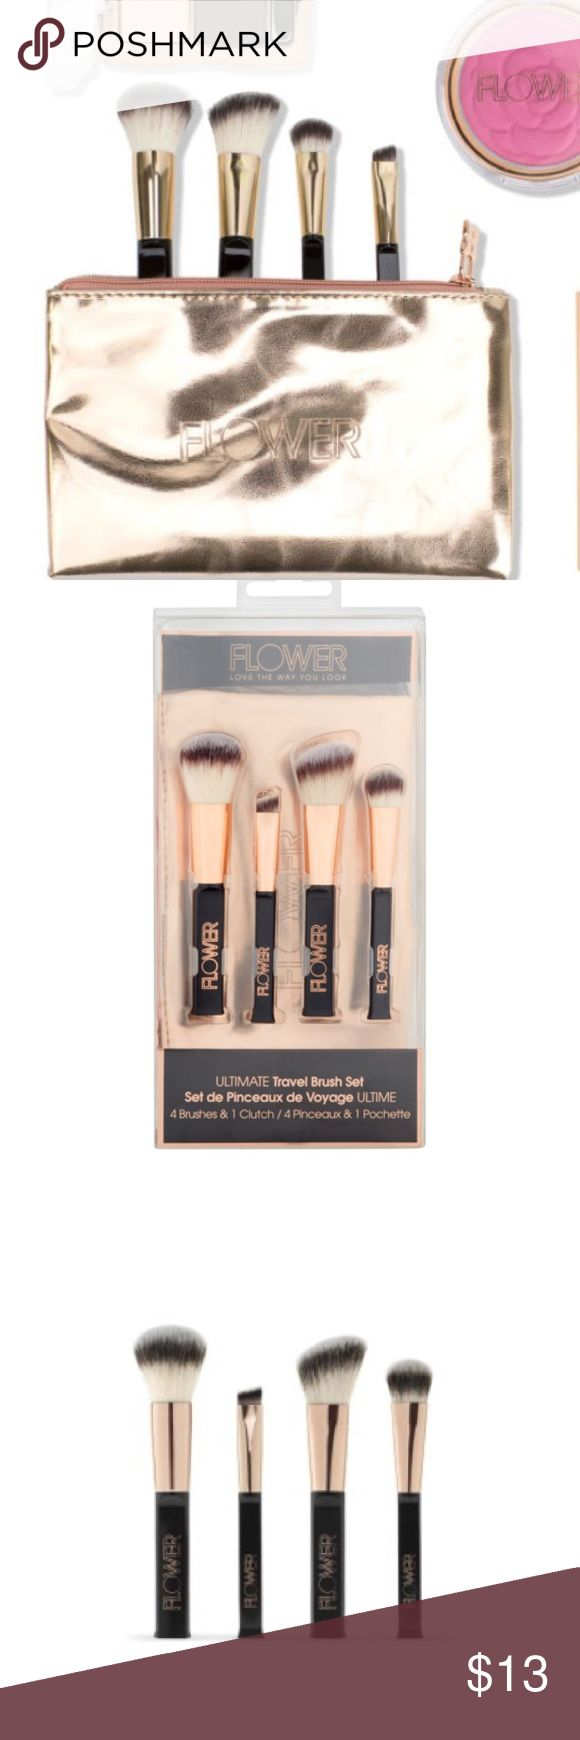 Flower Ultimate Travel Brush Set: Brand new in box. Ultimate Travel Brush Set   Keep the essential makeup brushes by your side with our exclusive travel clutch!  All your brush essentials go mini!  Includes: Power Brush, Blush/Contour Brush, Eyeshadow Brush, Eyeliner Brush, and Rose Gold Clutch Softest, finest man-made hair Washable brush head Flower Makeup Brushes & Tools